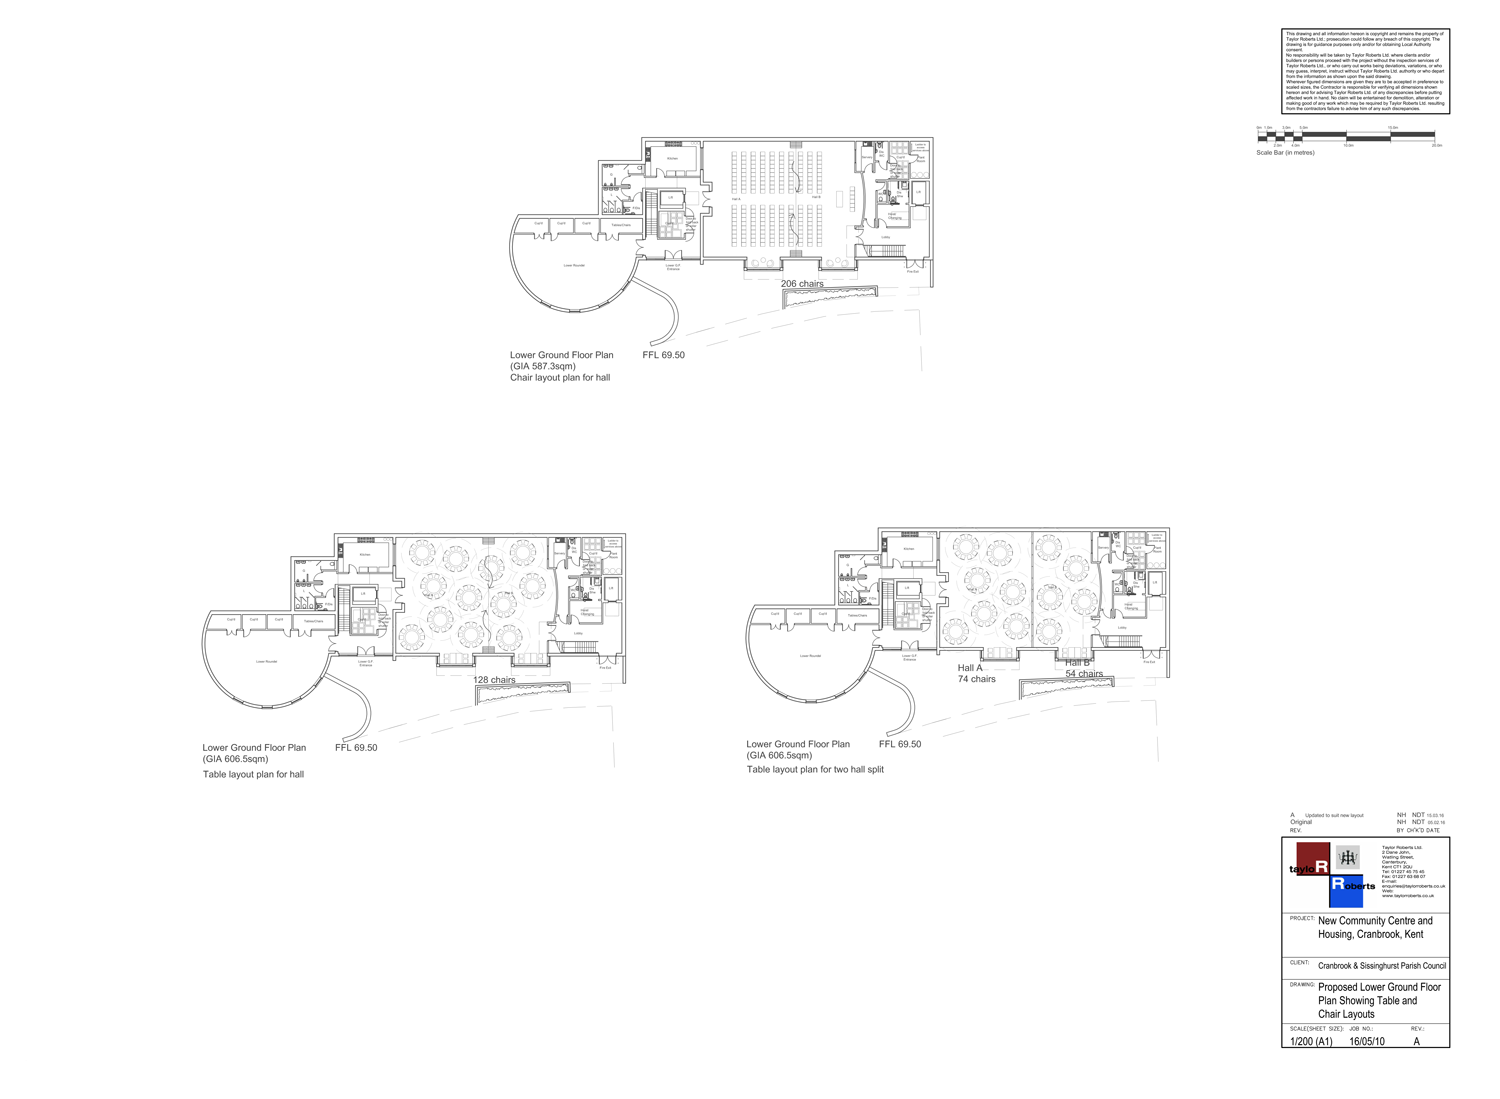 Community-Centre-lower-ground-floor-plan-layouts.png